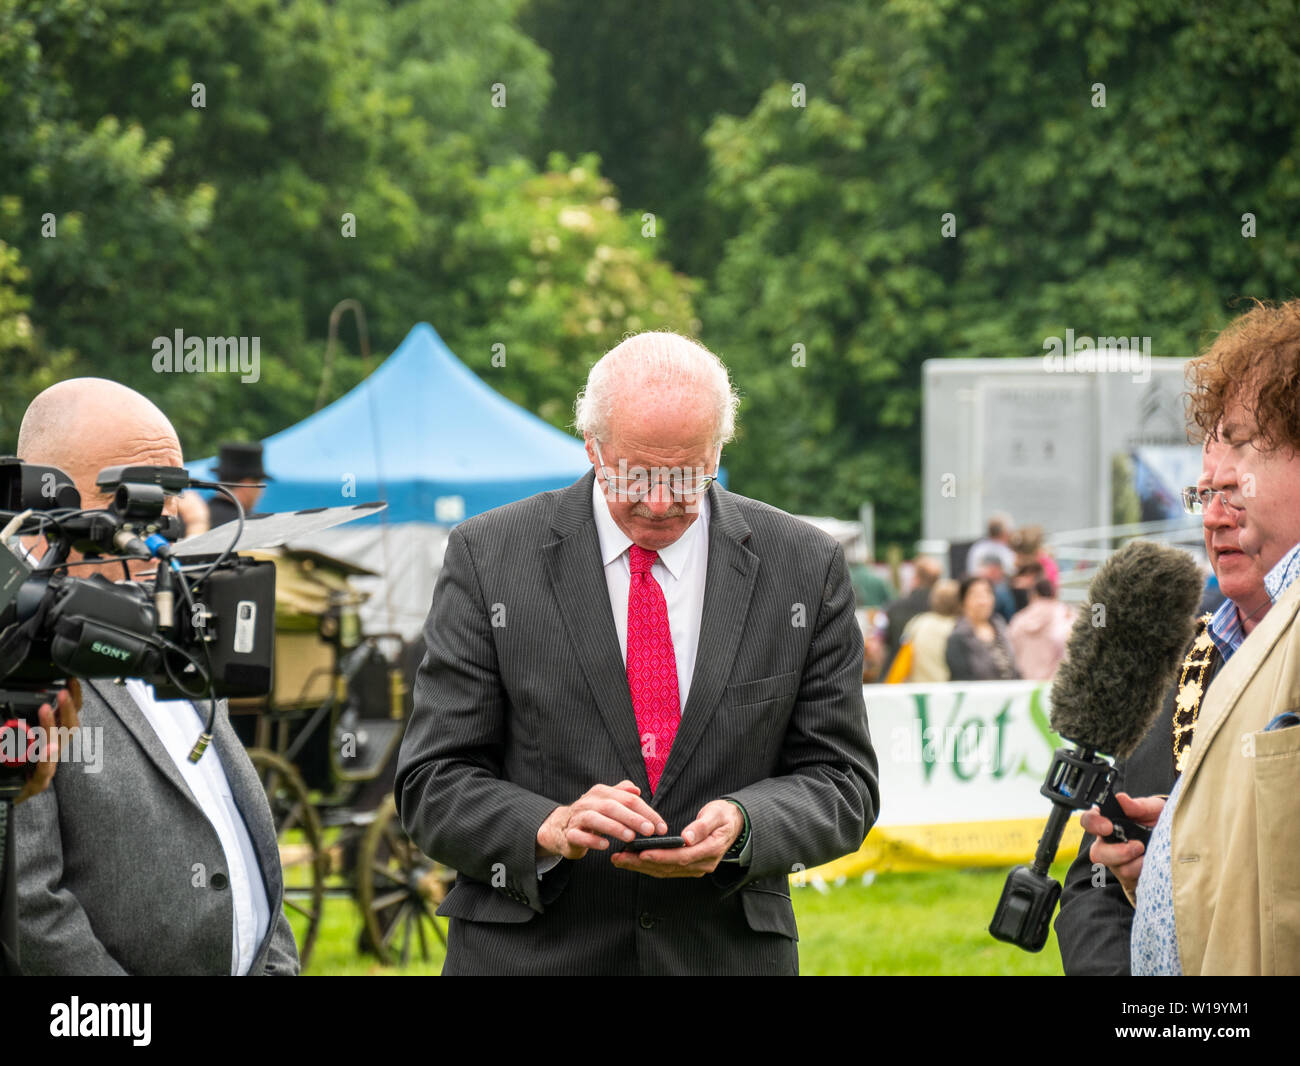 Antrim, Northern Ireland, UK, 29 June 2019: Jim Shannon, MP, Democratic Unionist Party, DUP, for Strangford at the Irish Game Fair and Fine Food Festival, Shanes Castle, Antrim, Northern Ireland. - Stock Image